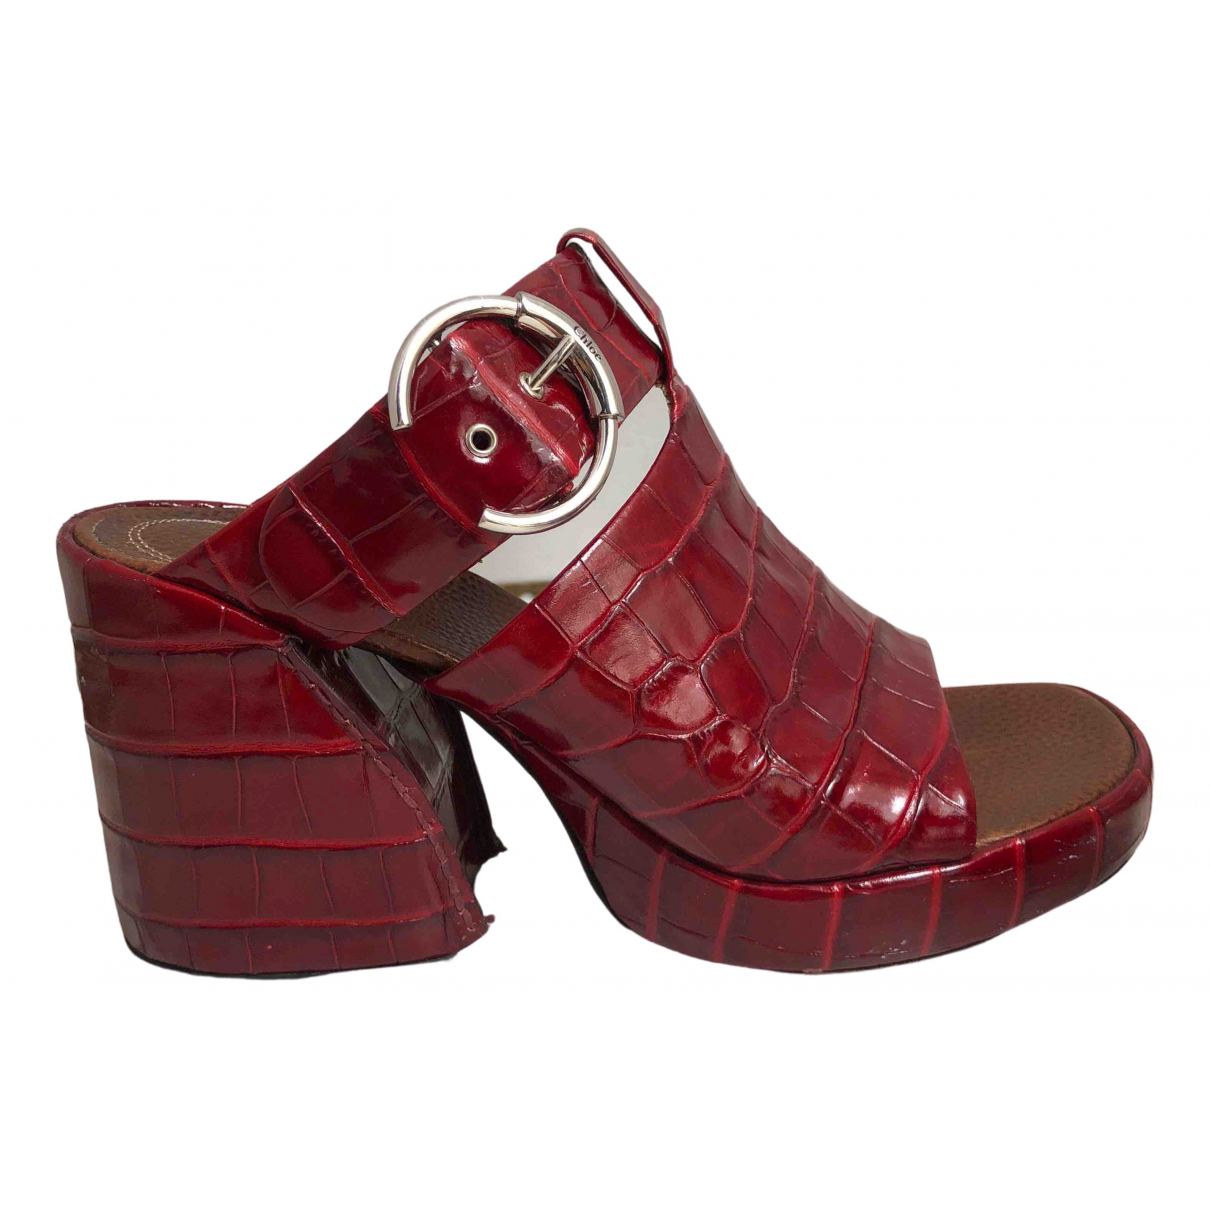 Chloé \N Red Leather Sandals for Women 41 EU